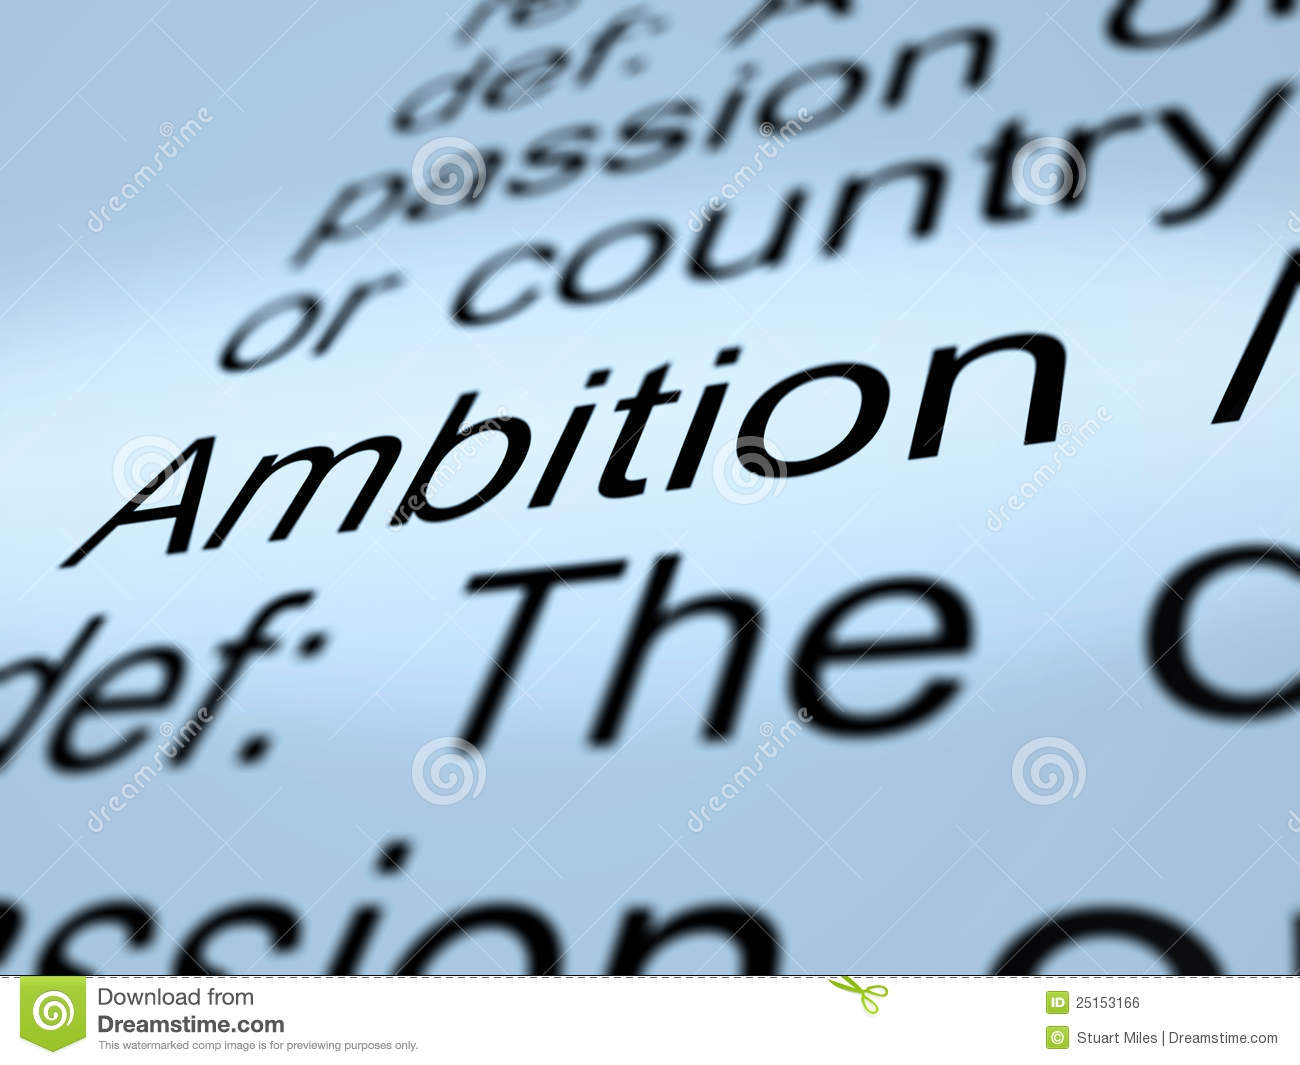 definition essays on ambition essayhelp169 web fc2 com definition essays on ambition